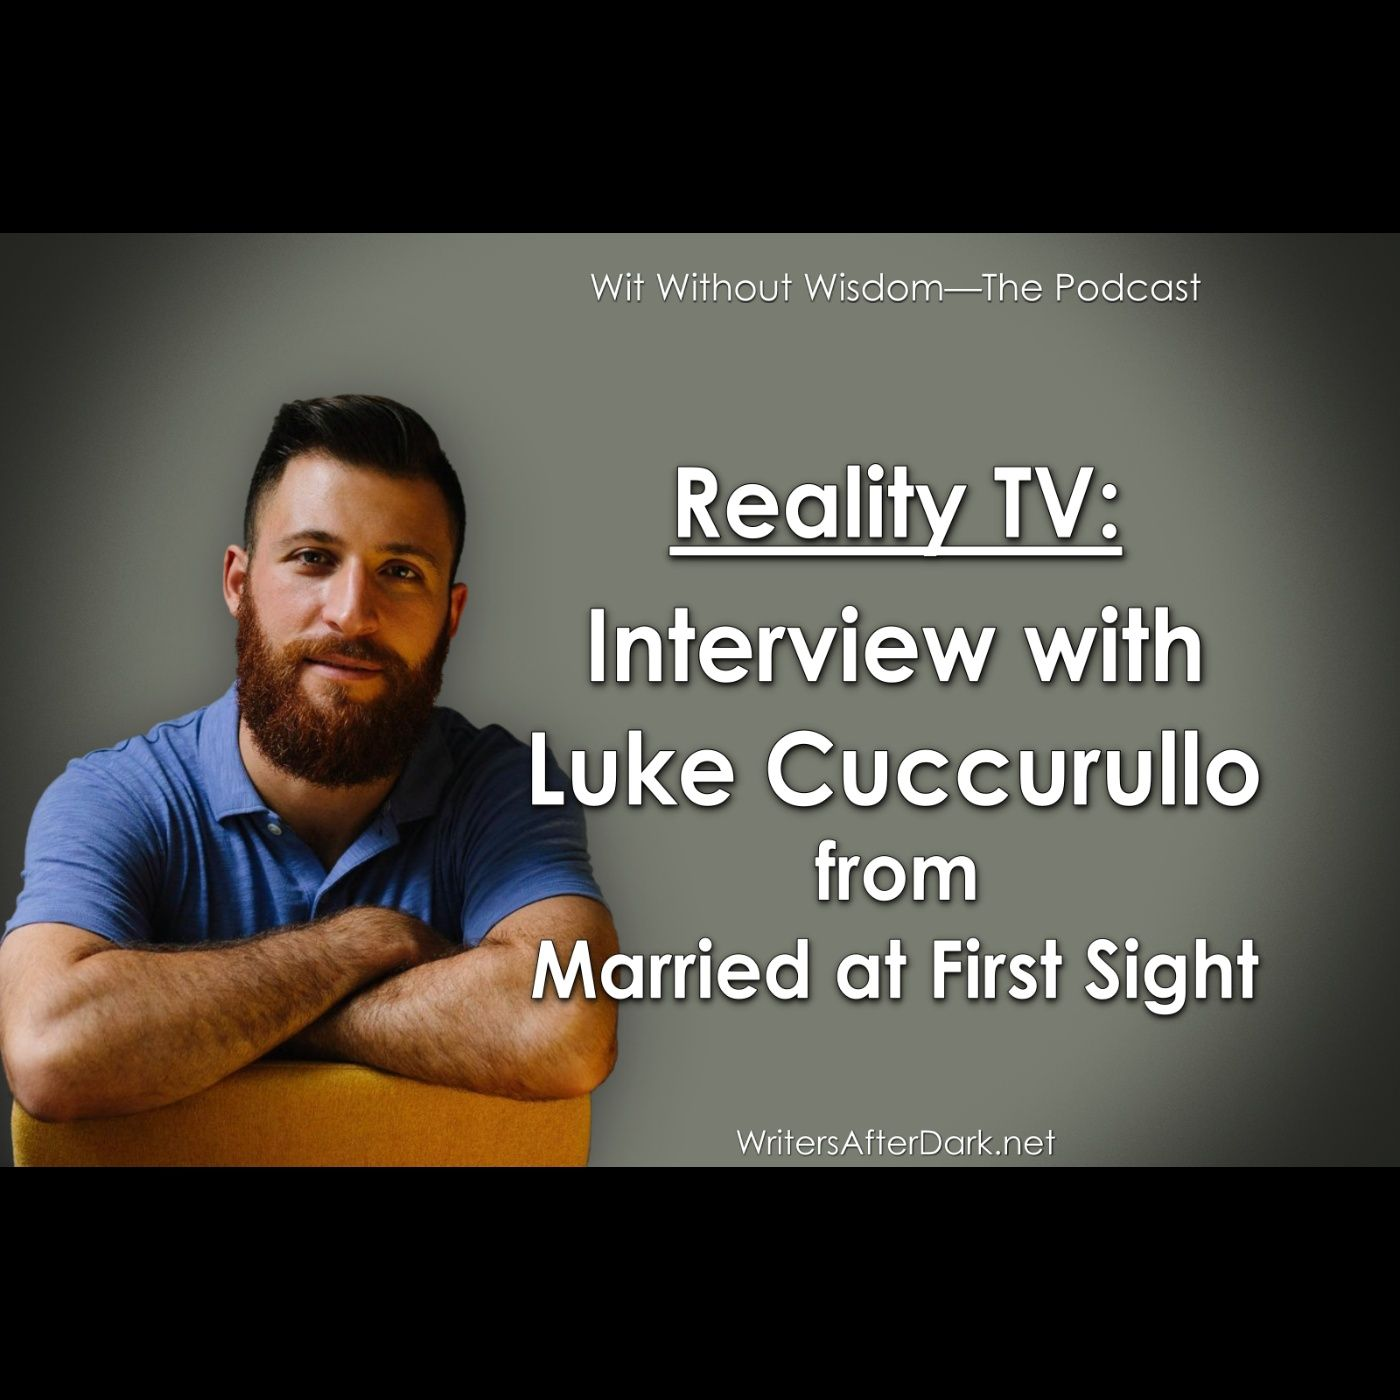 Reality TV: Interview with Luke Cuccurullo from Married at First Sight